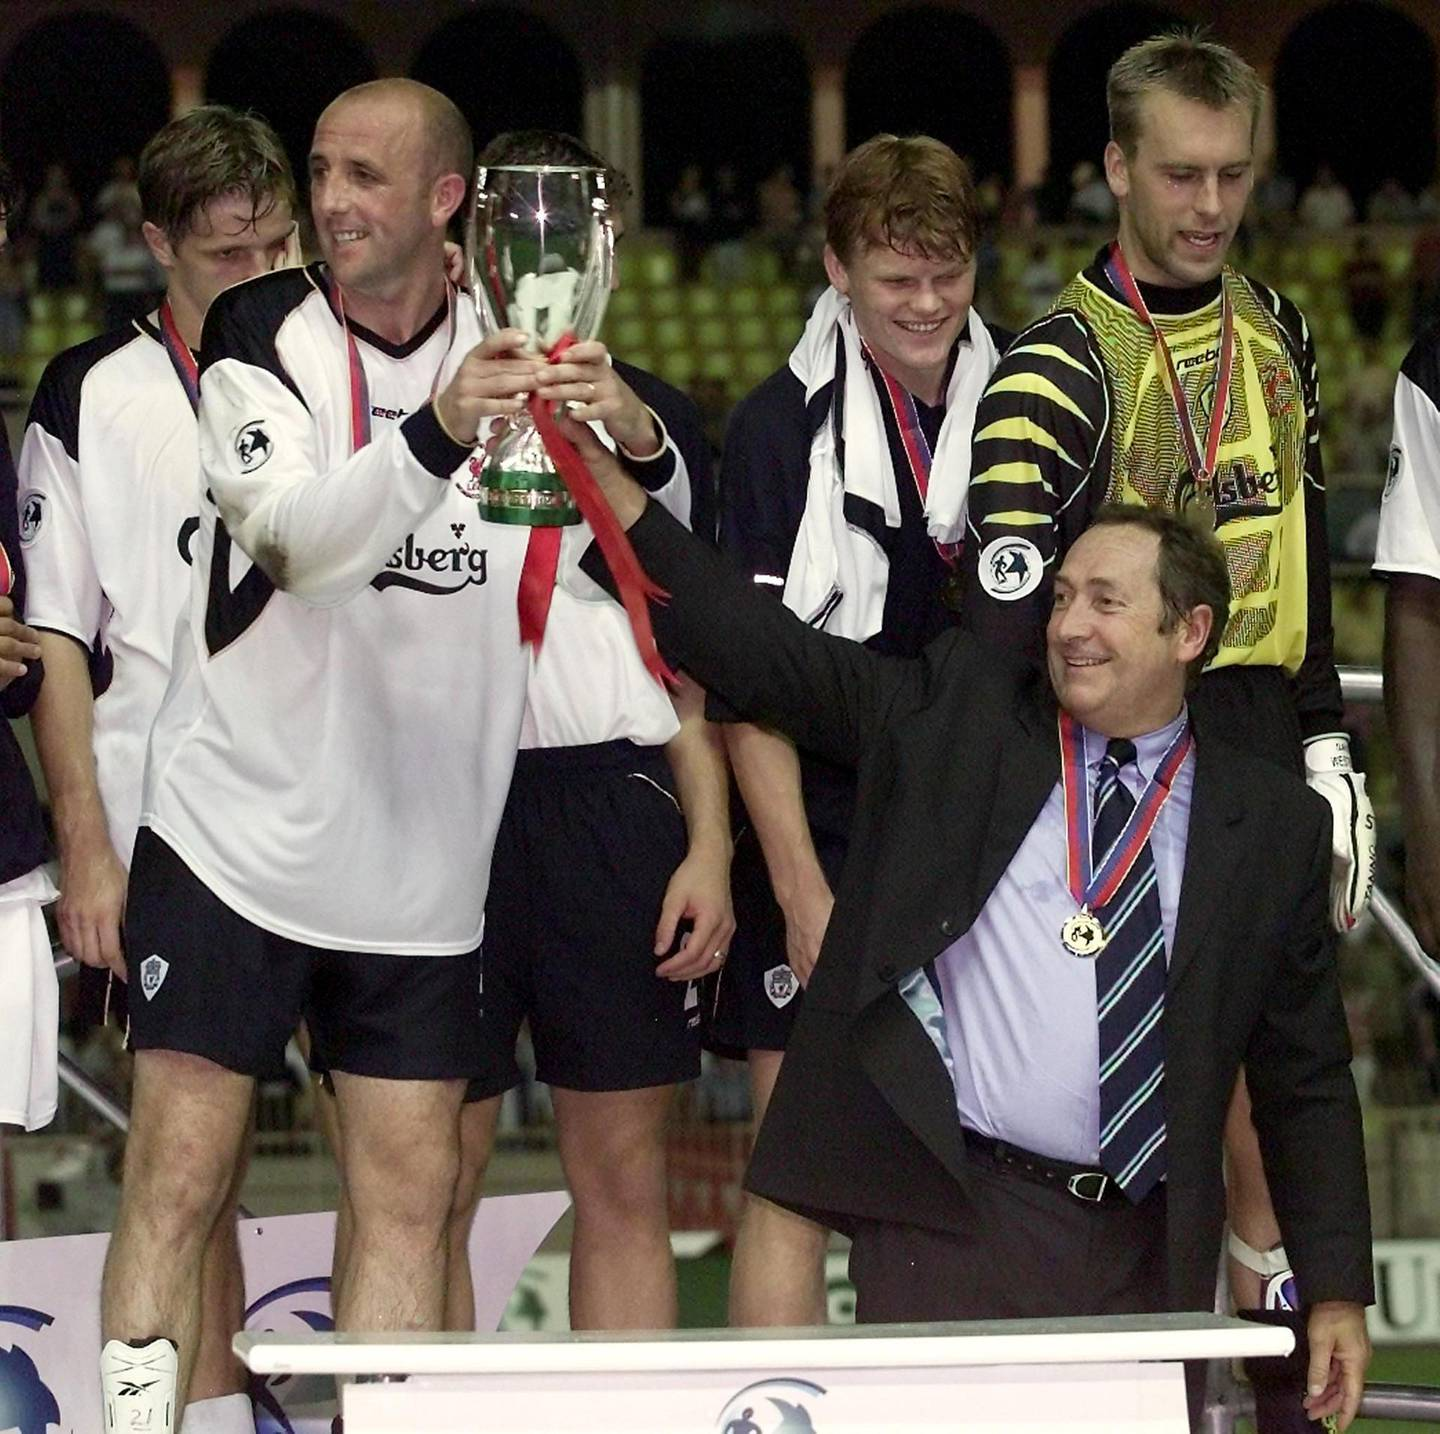 (FILES) In this file photo taken on August 24, 2001 Liverpool's French coach Gerard Houllier hoists the cup with team players after winning 3-2 against Bayern Munich in the European Super Cup held at Stade Louis II in Monaco. Ex-Liverpool manager Gerard Houllier has died at the age of 73, it was announced on December 14, 2020.  / AFP / JACQUES MUNCH